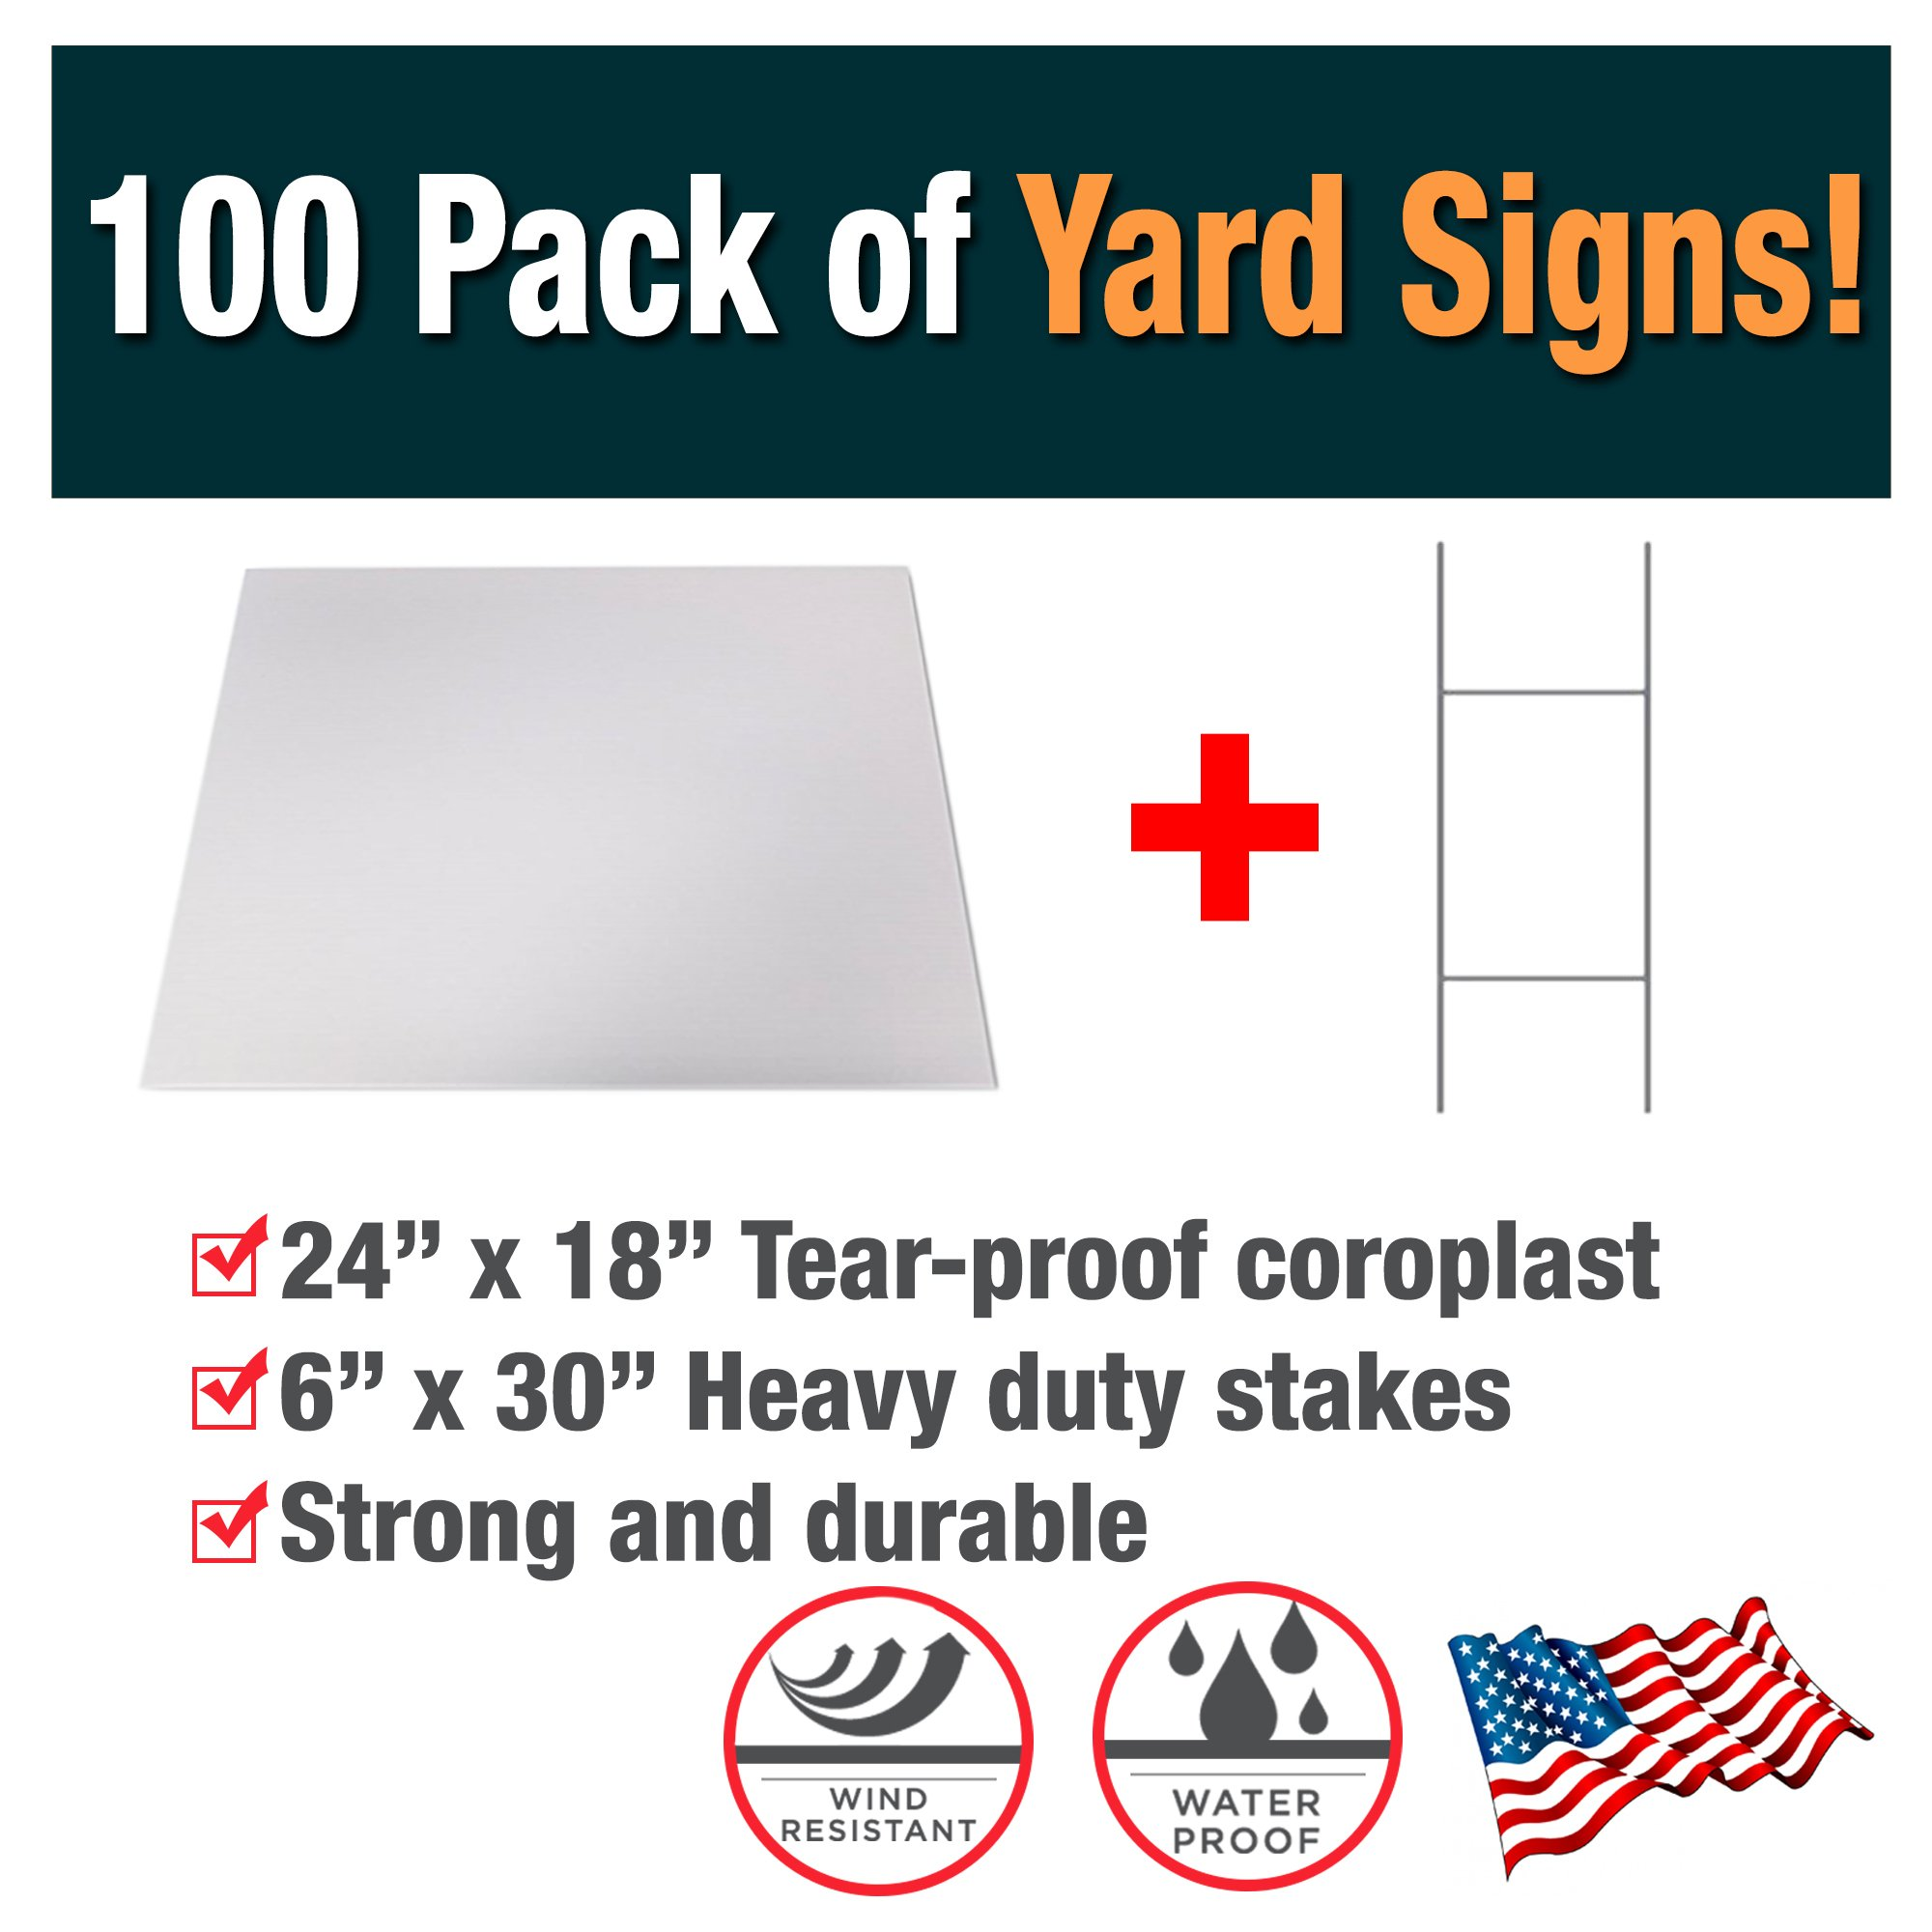 100 Pack of Blank Yard Signs - Made with Tear-Proof 18x24 Inch Coroplast - Heavy Duty H-Stakes Included - Great for Promoting Your Business, Open House, For Rent, Garage Sale, Elections, & Birthdays!